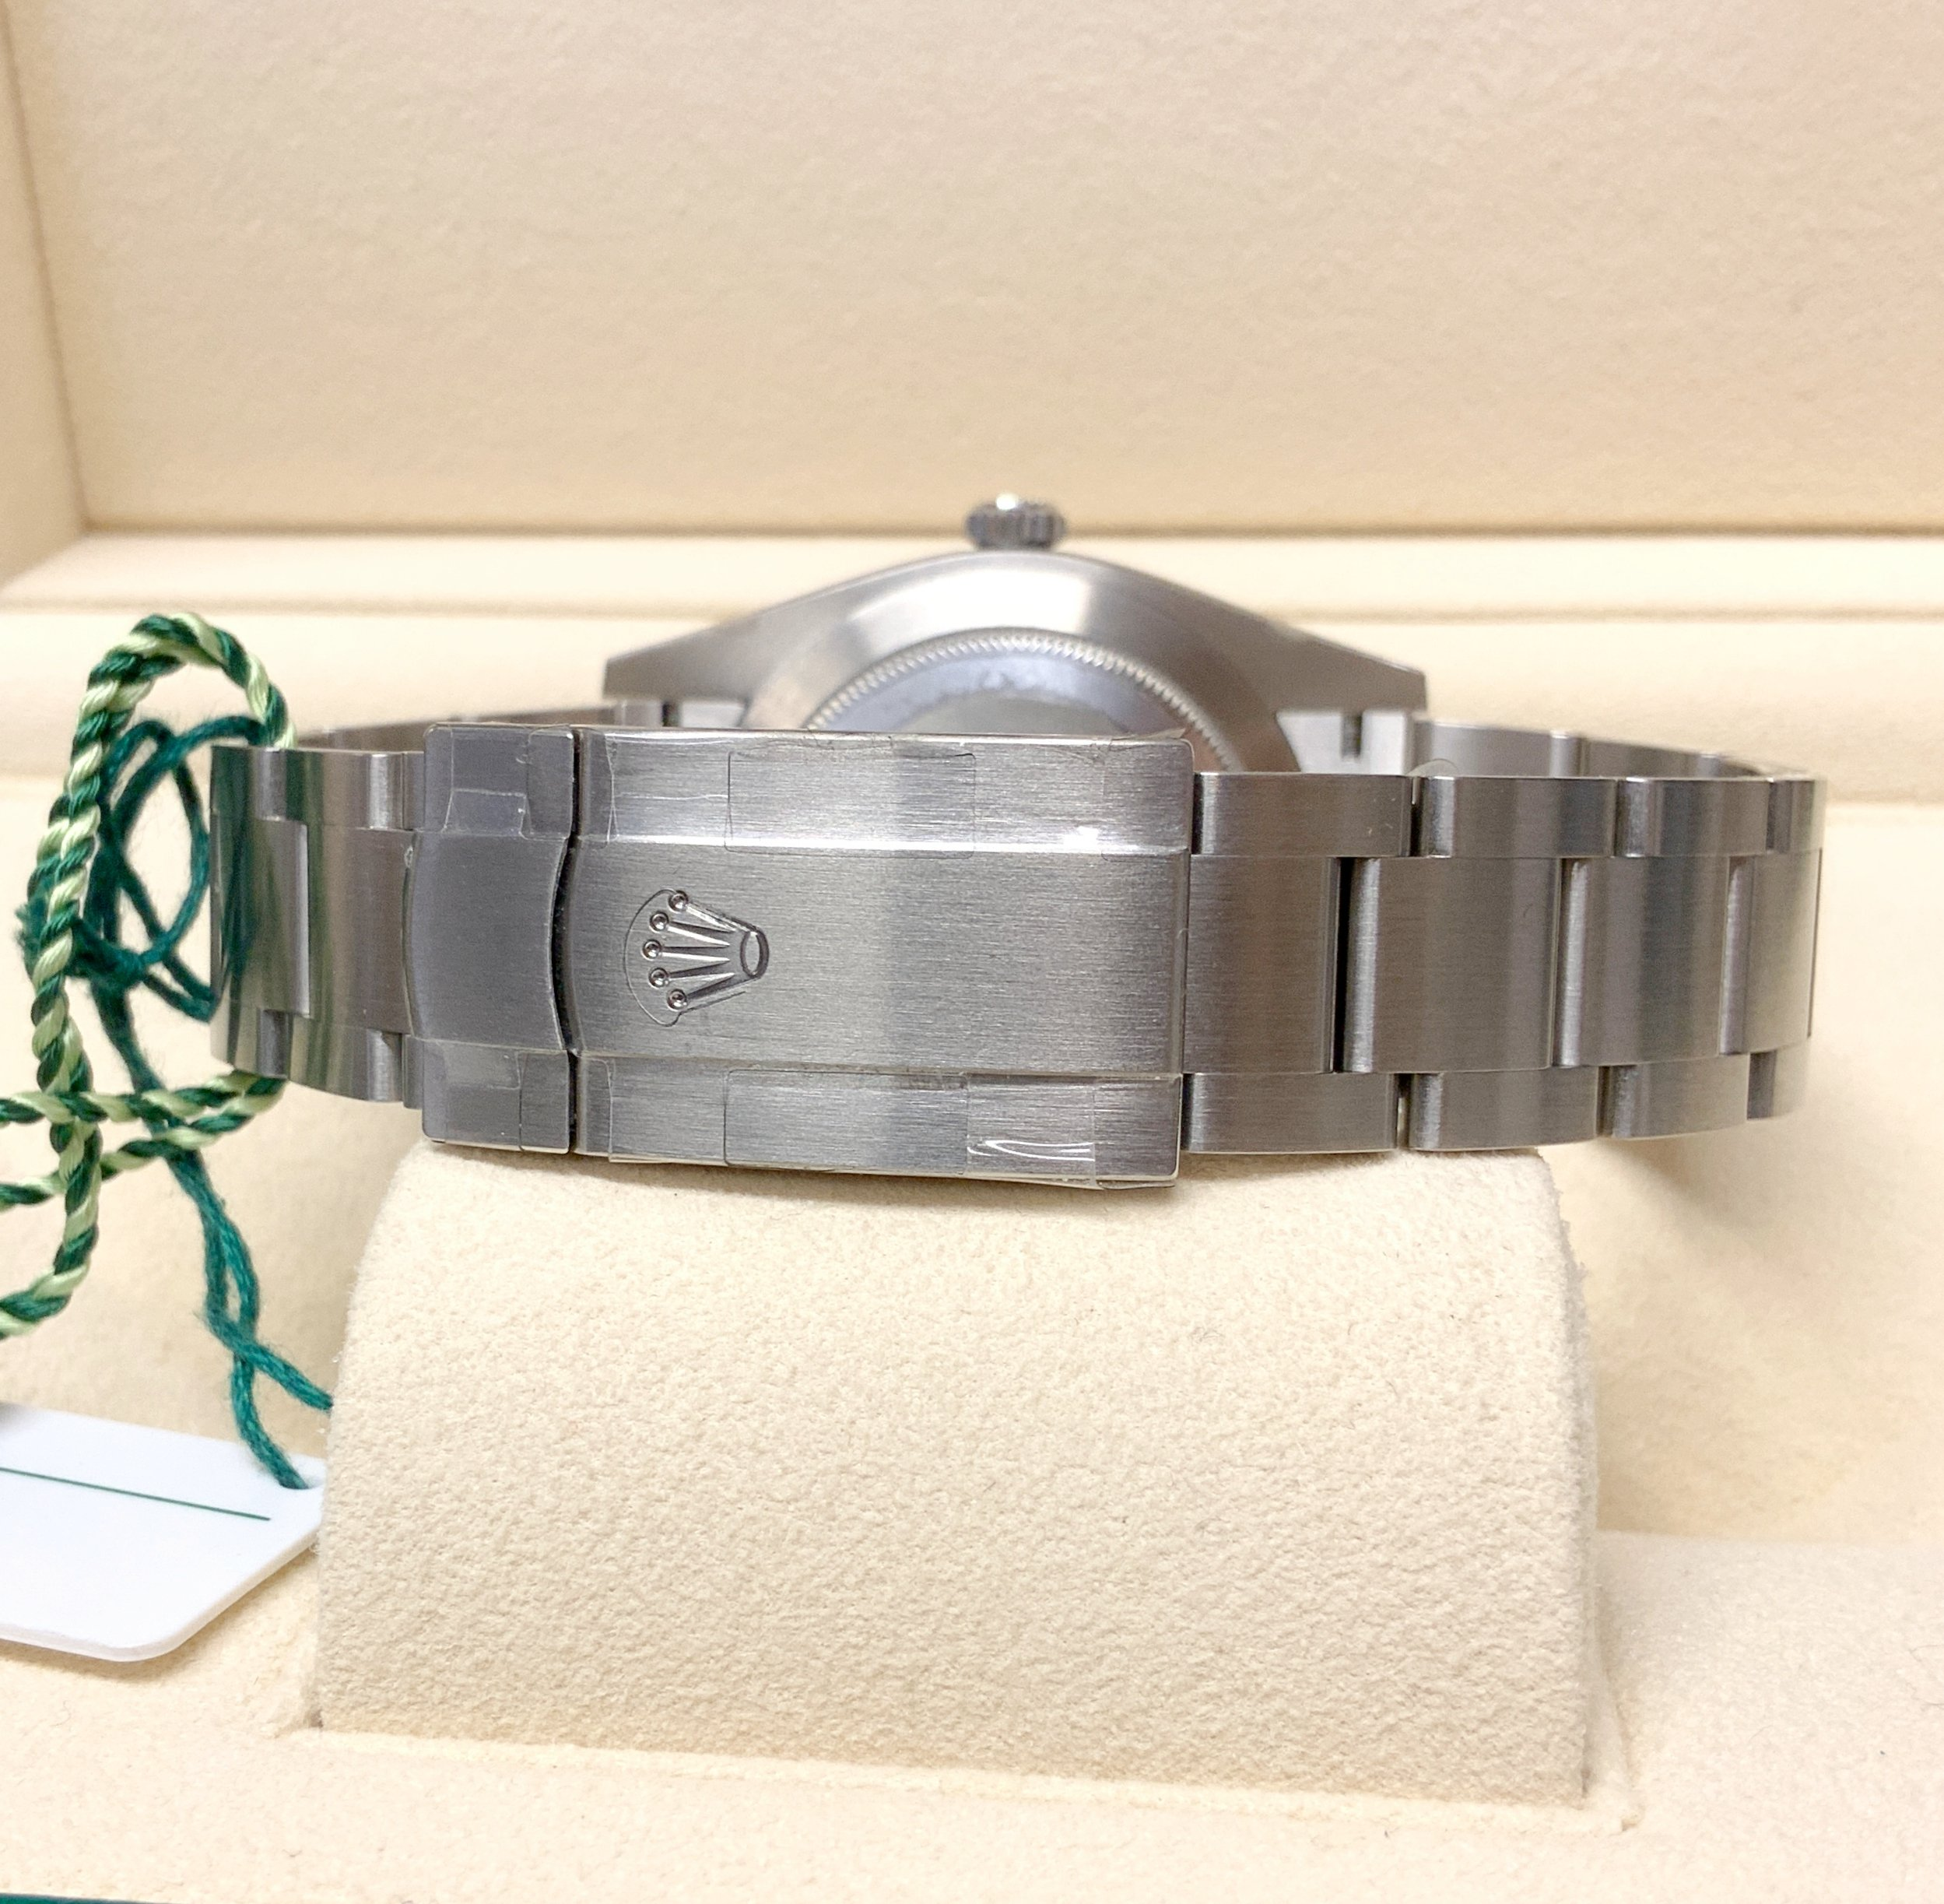 Rolex replica Oyster Perpetual 41 124300 Turquoise Blue 3230 clone movement